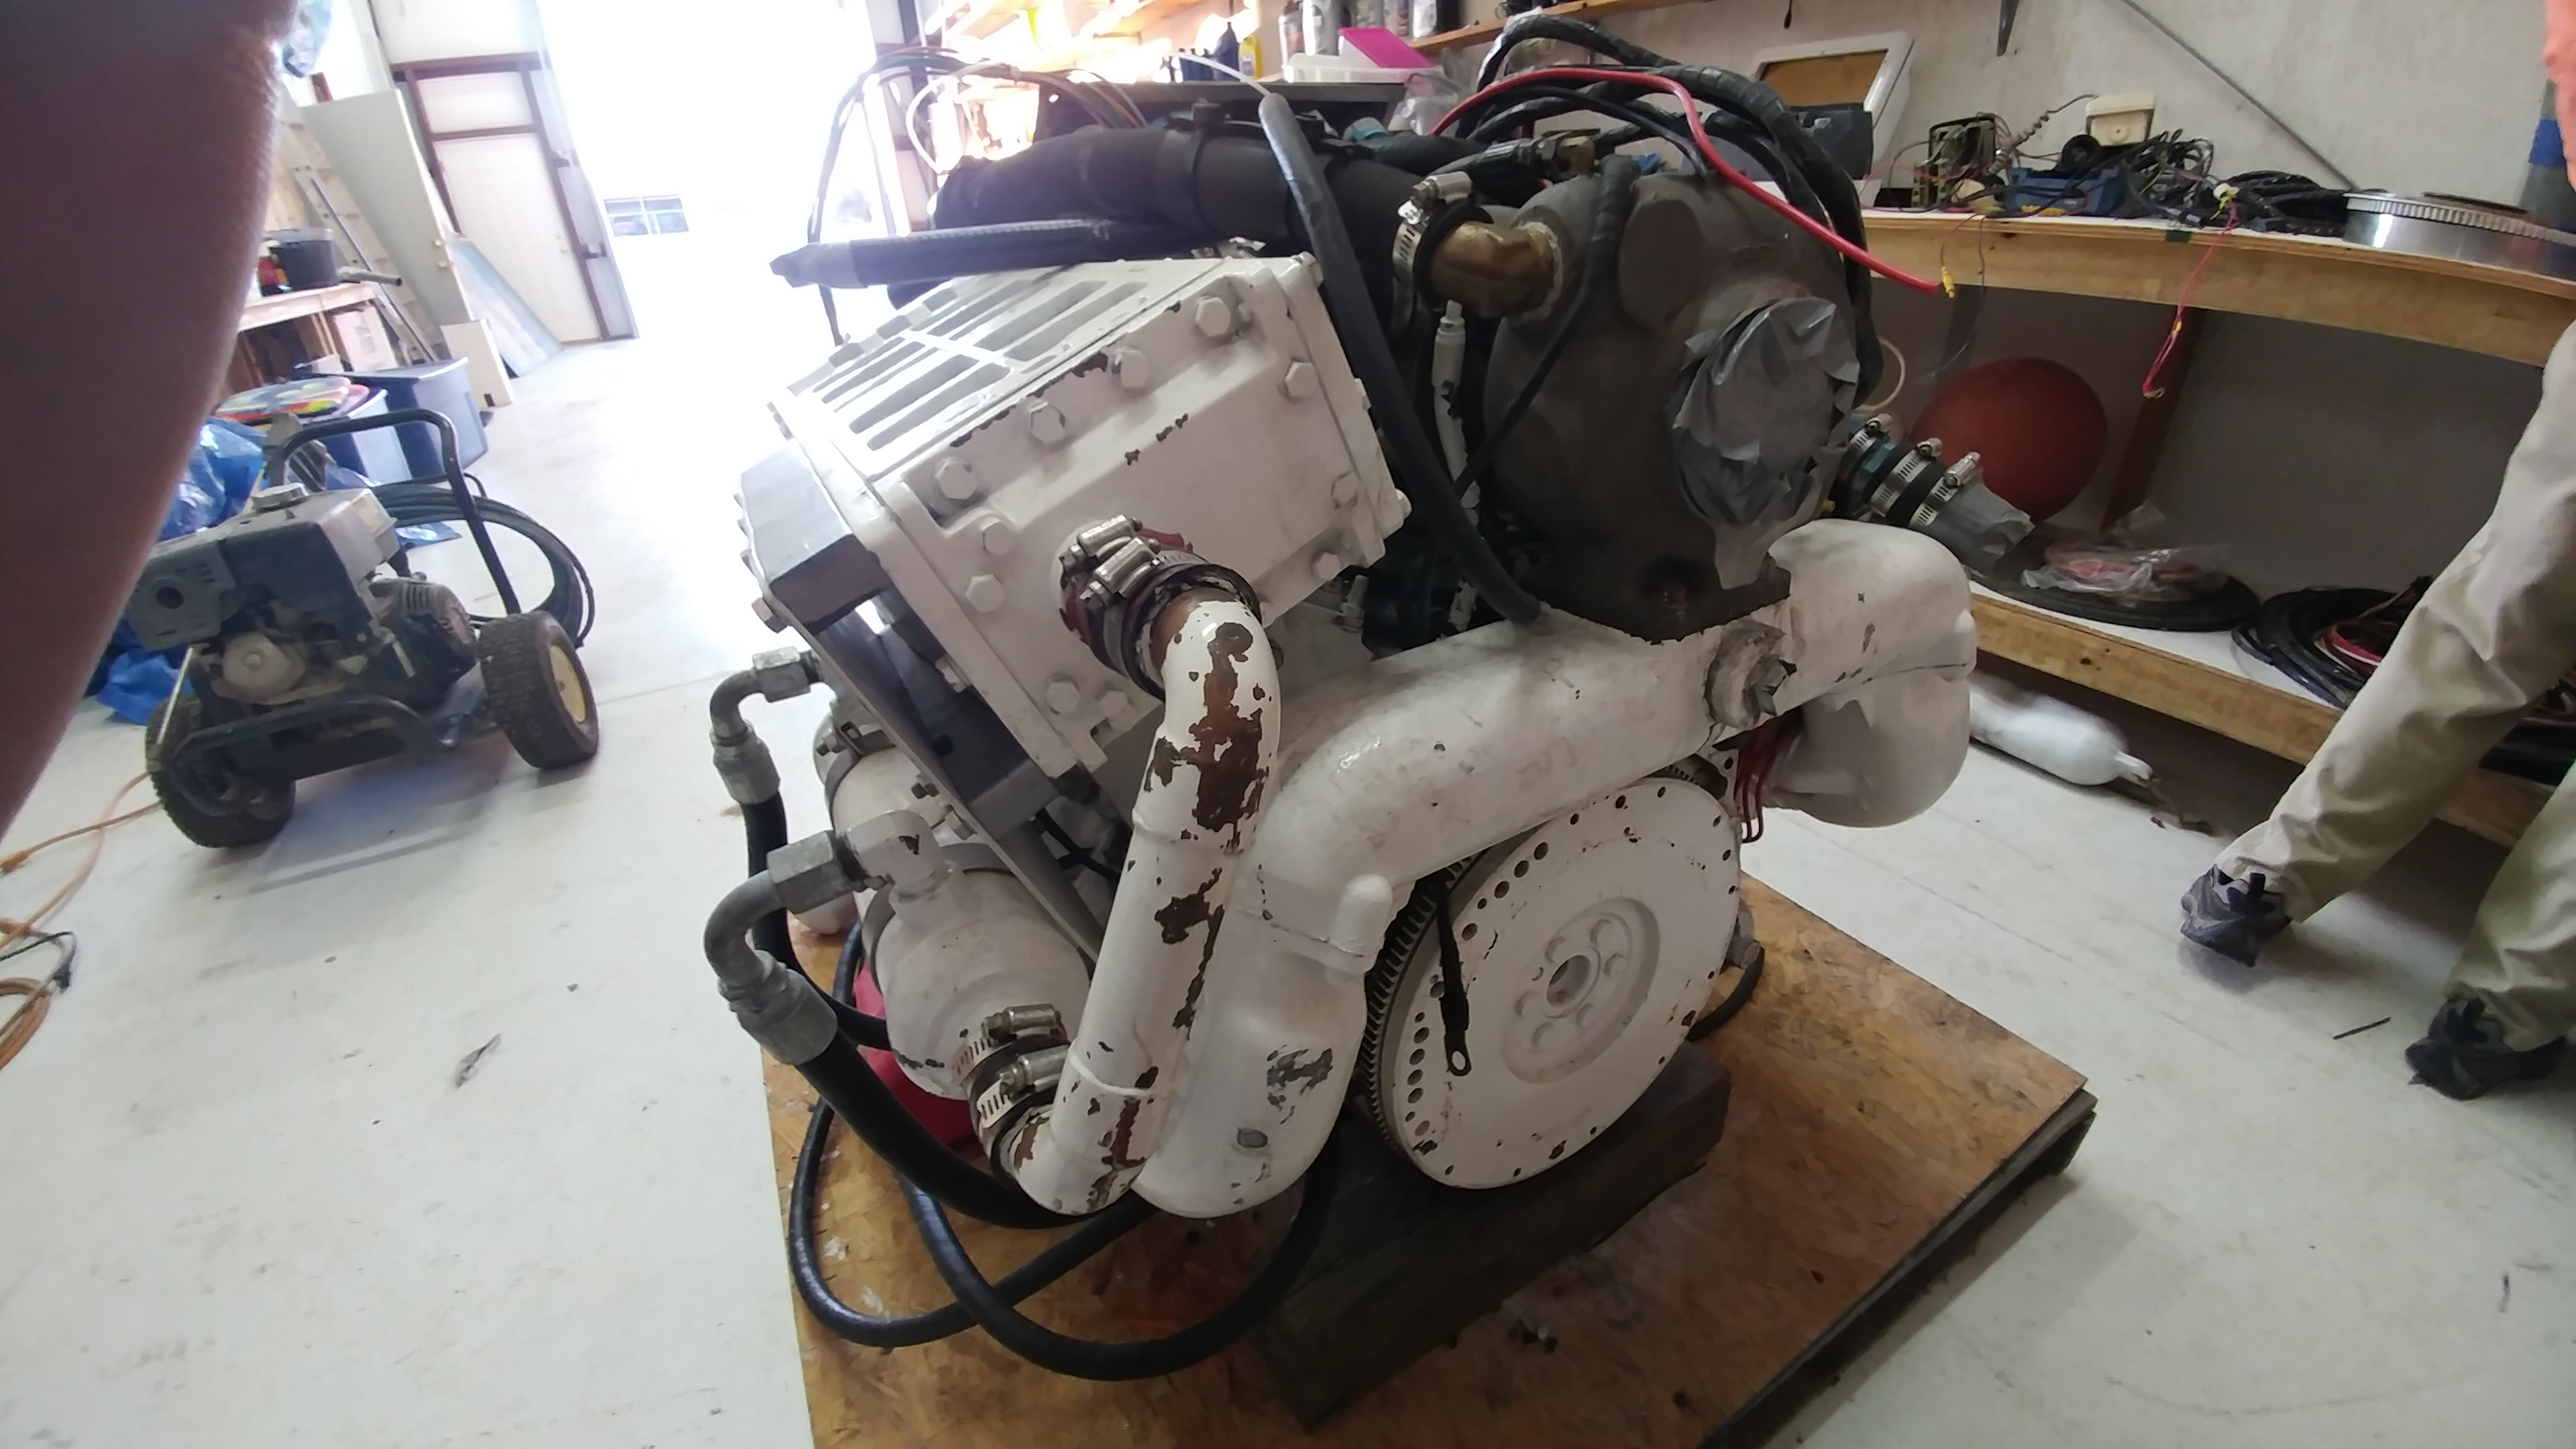 09 65l Gm Marine Turbo Diesel Florida Sportsman Wiring Gauge All Inclusive Ready To Drop In Your Boat It Is 310hp With Aprox 1500 Hrs Includes Gauges Intercooler Oil Cooler W Remote Filter